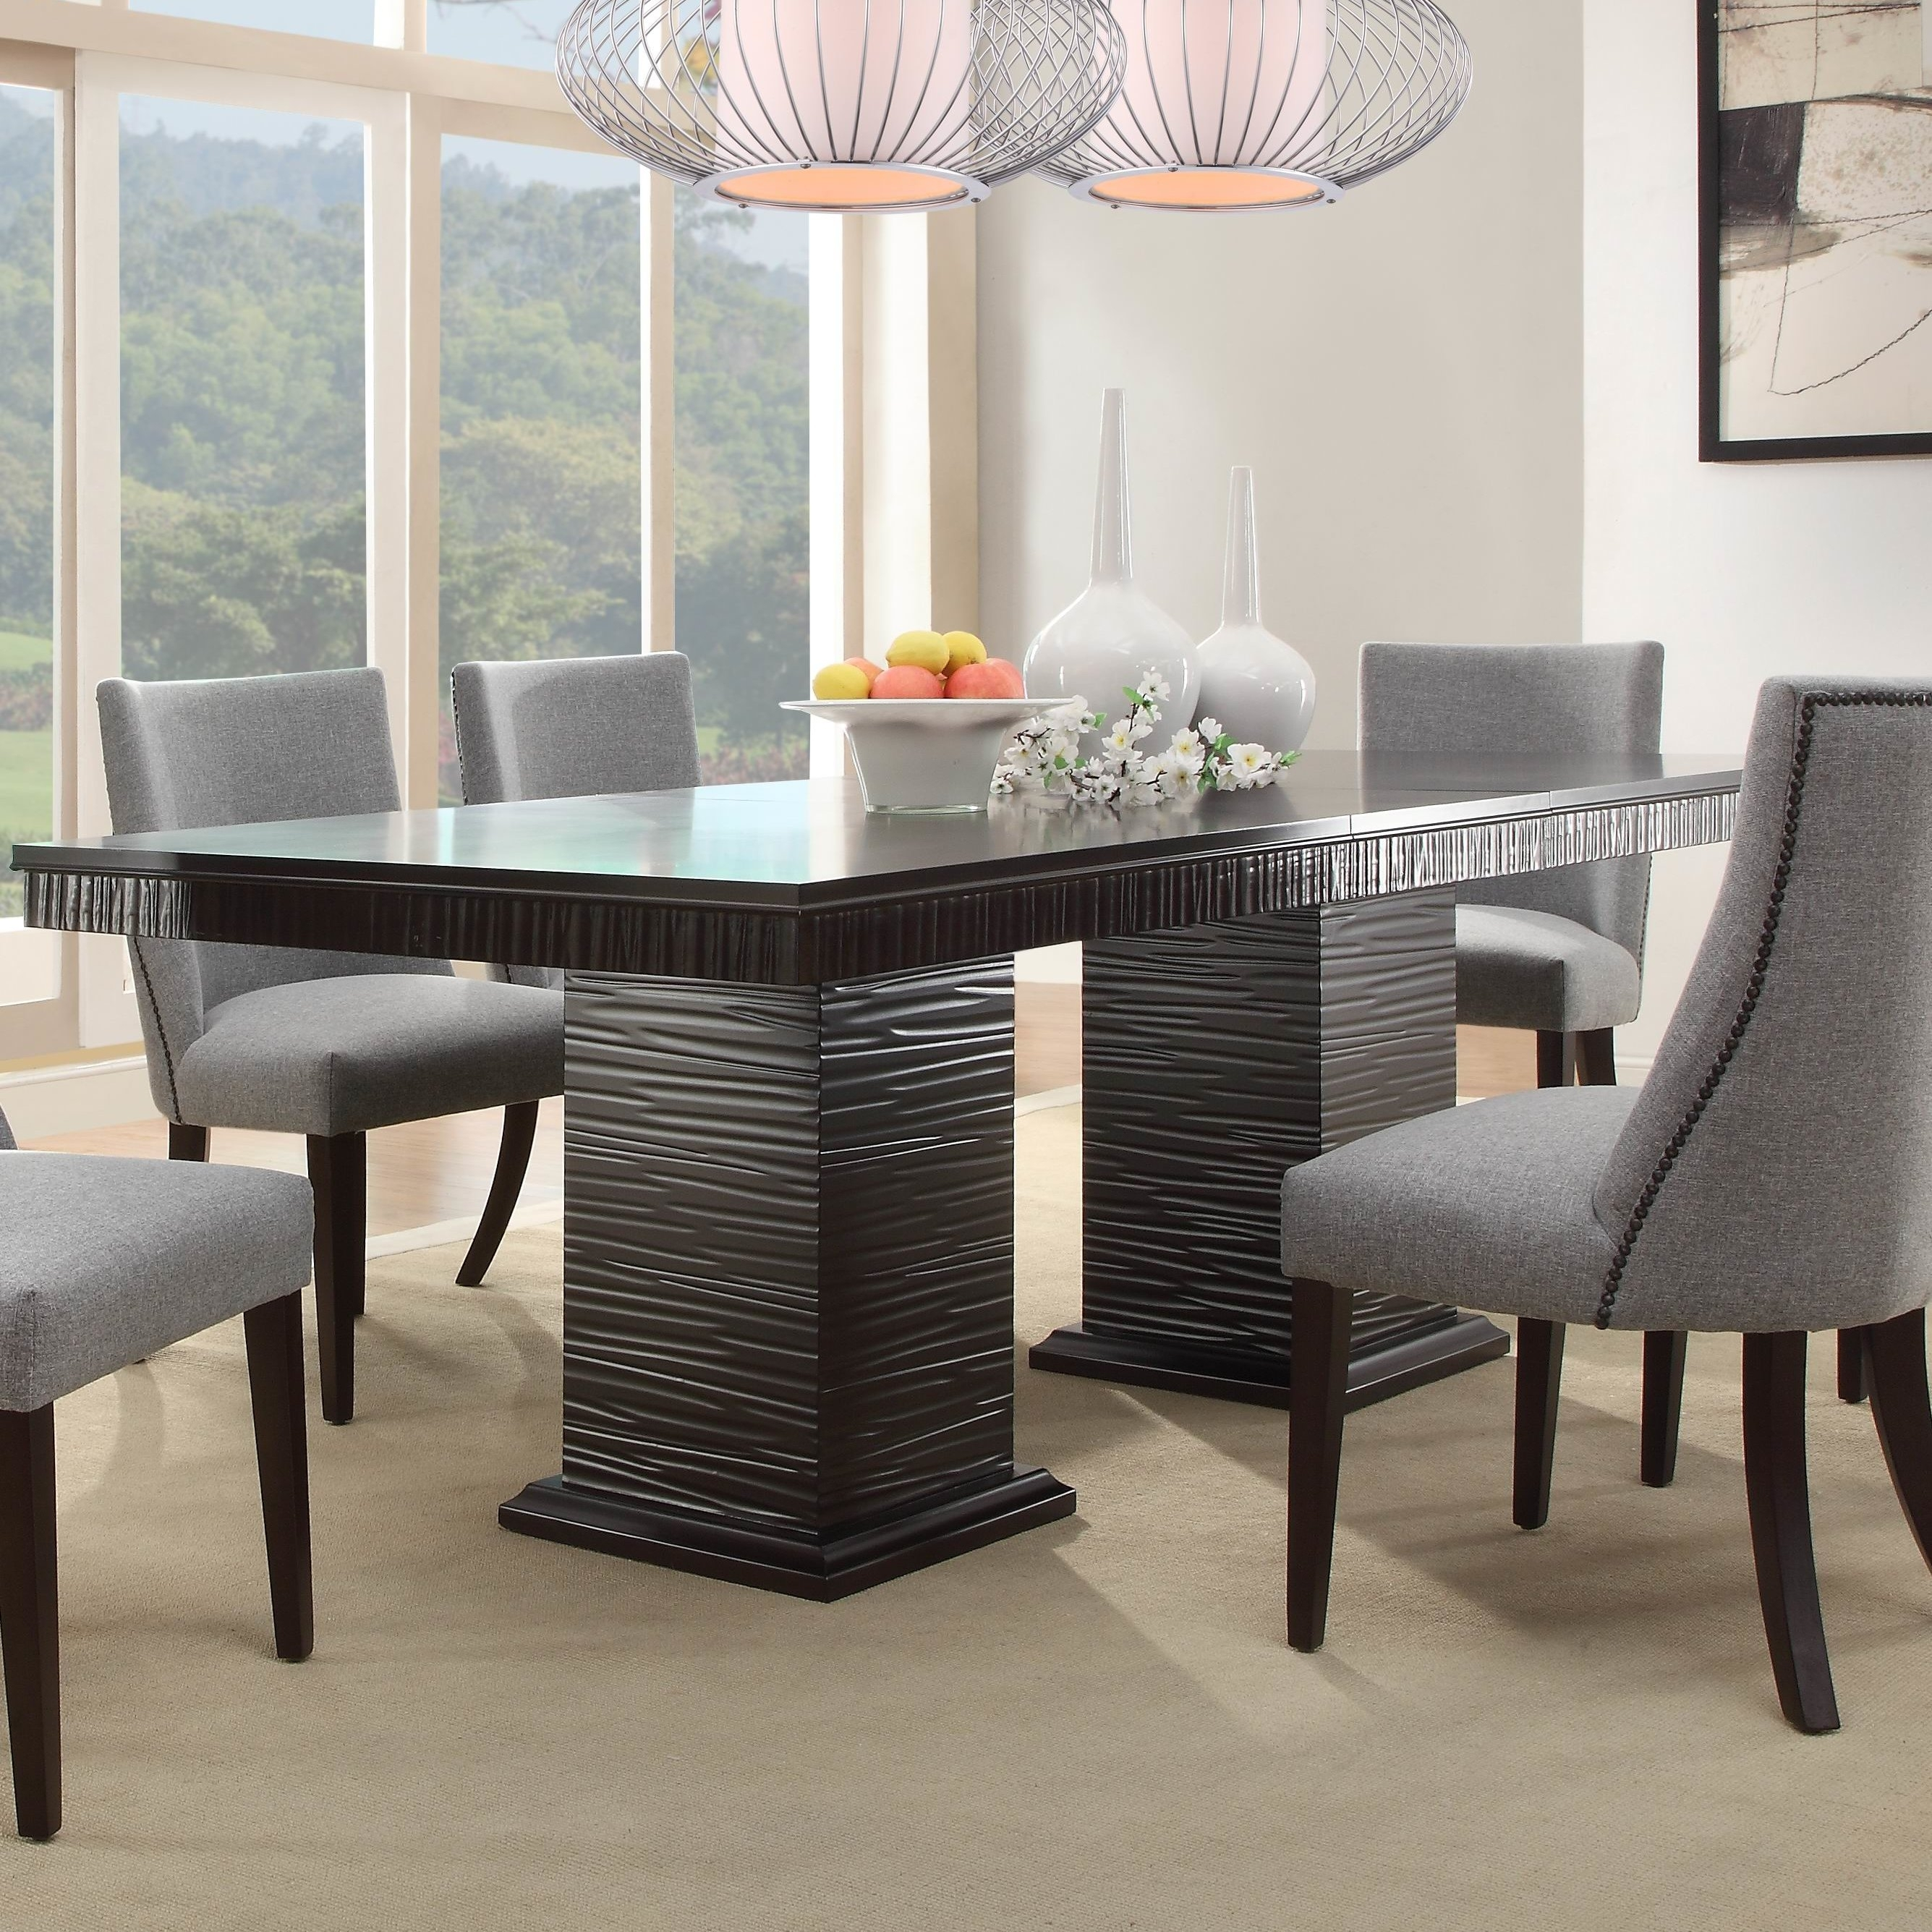 Cadogan Extendable Dining Table | Allmodern Pertaining To Current Delfina Dining Tables (Image 6 of 20)